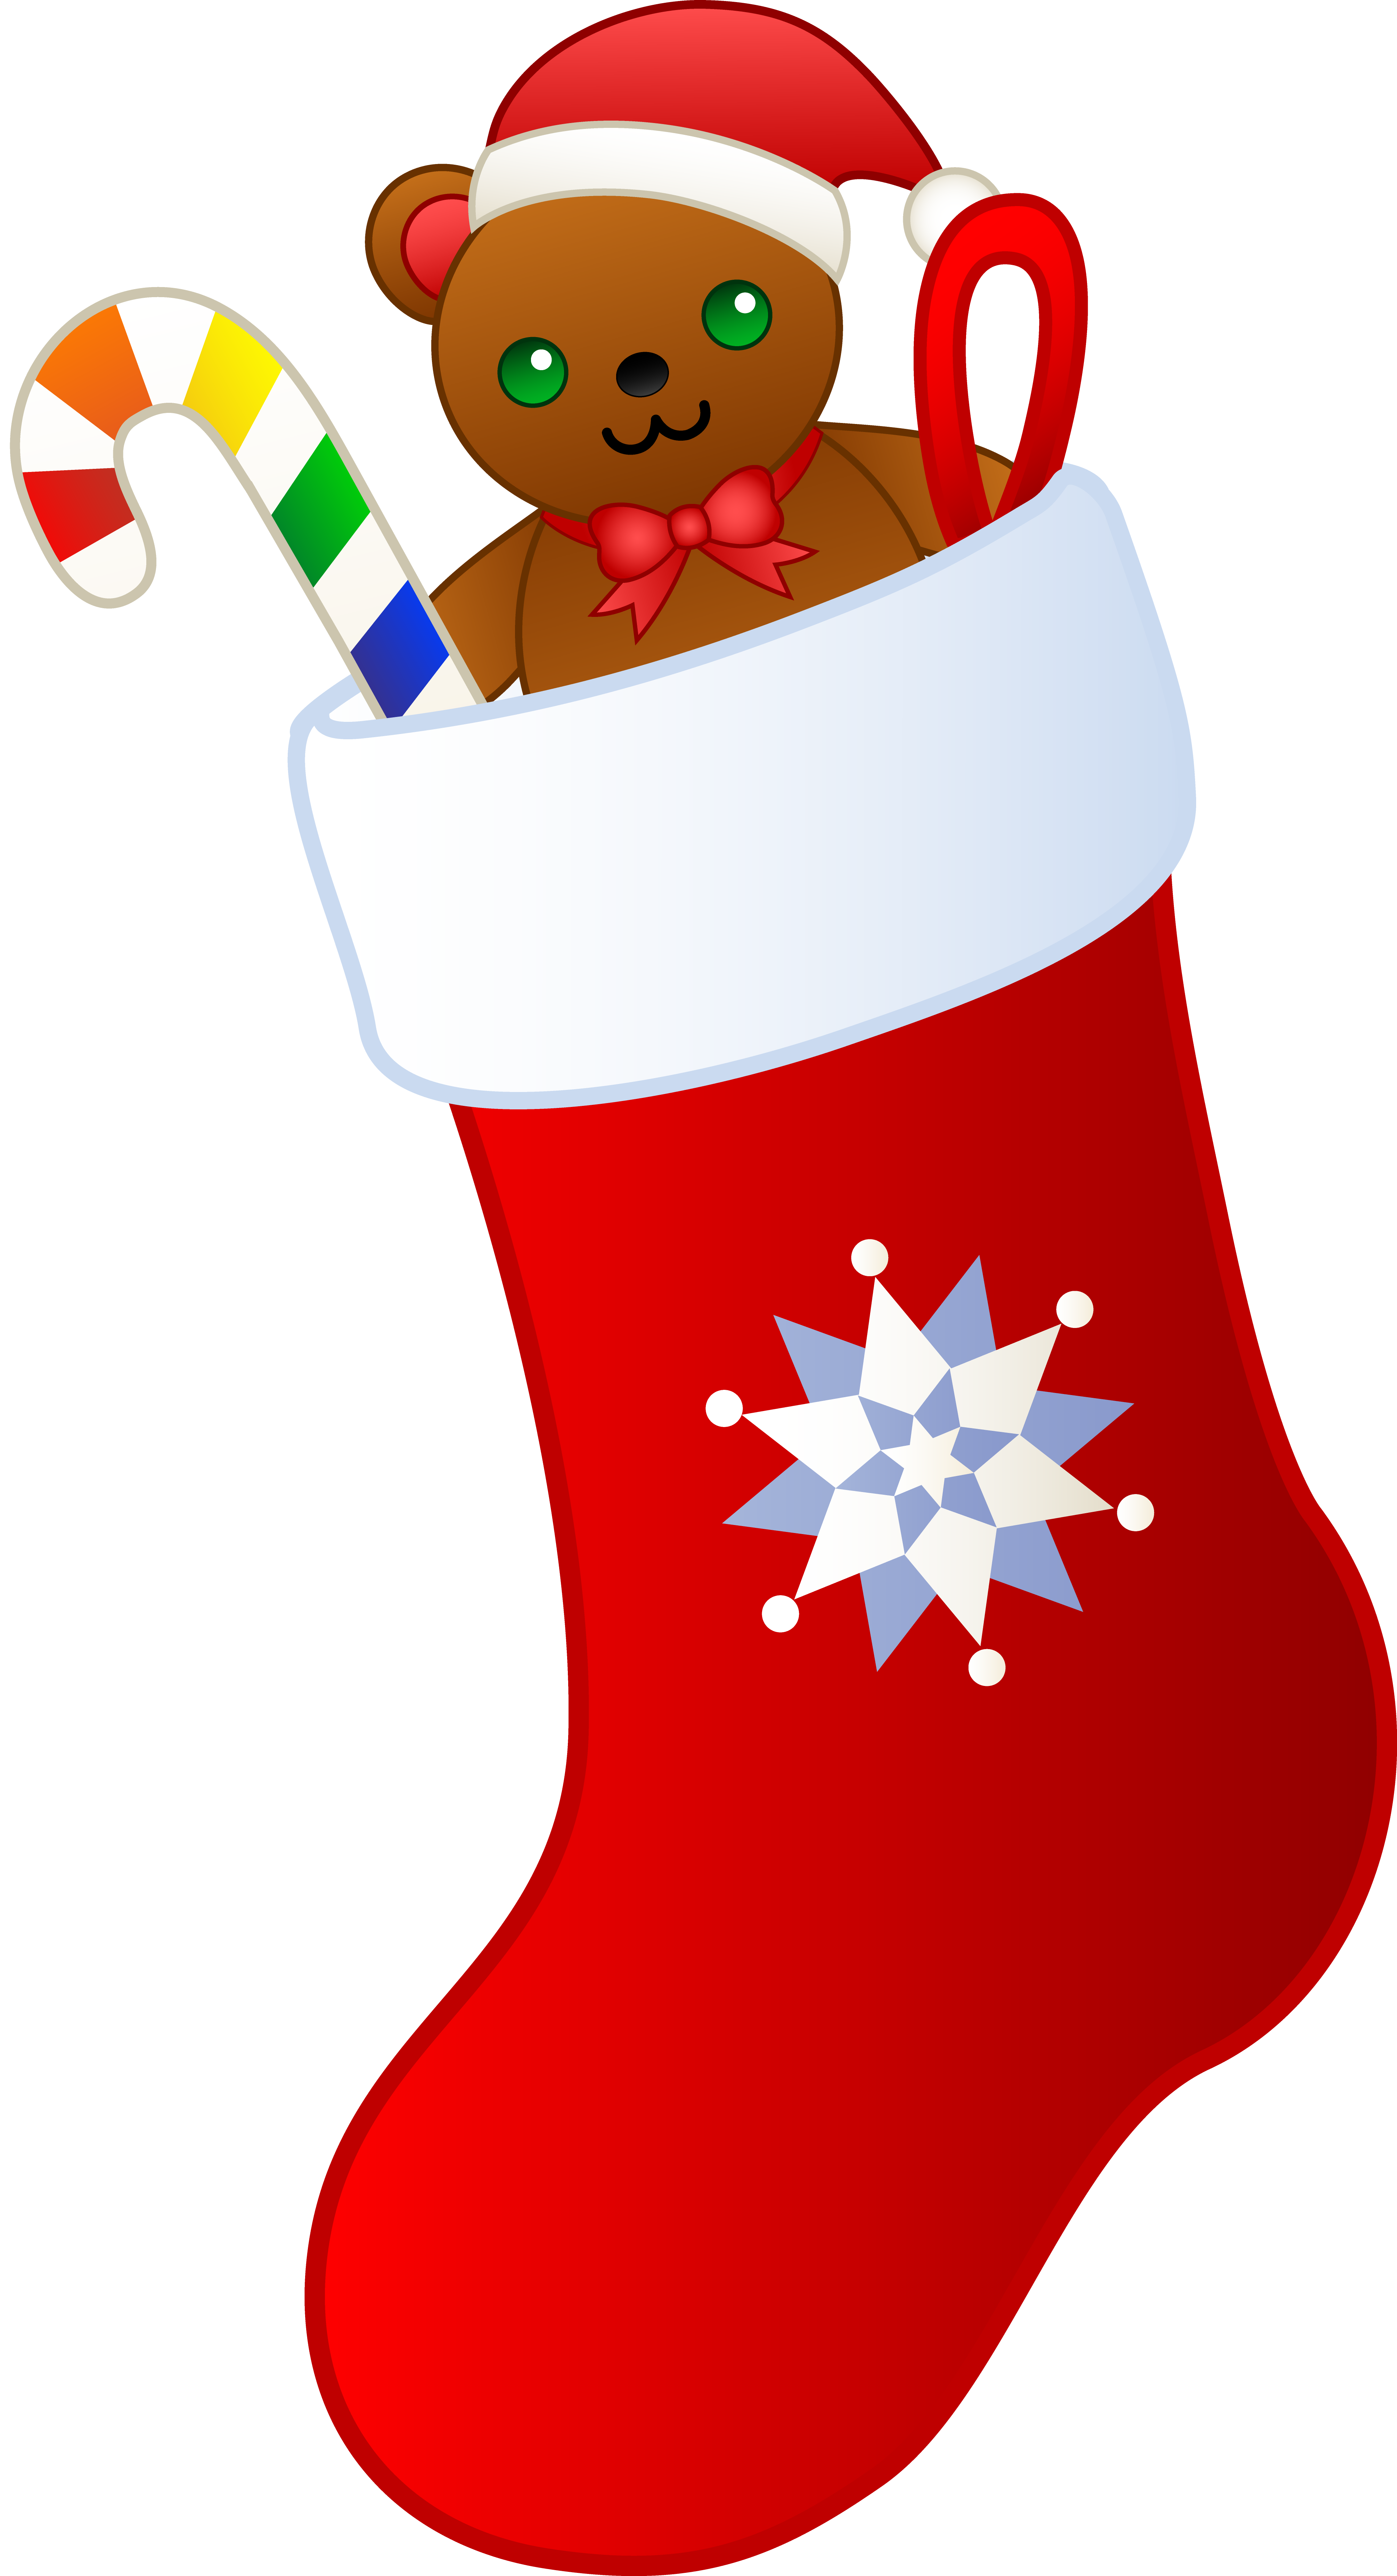 Christmas Toys Art : Christmas stocking with toys clipart clipground